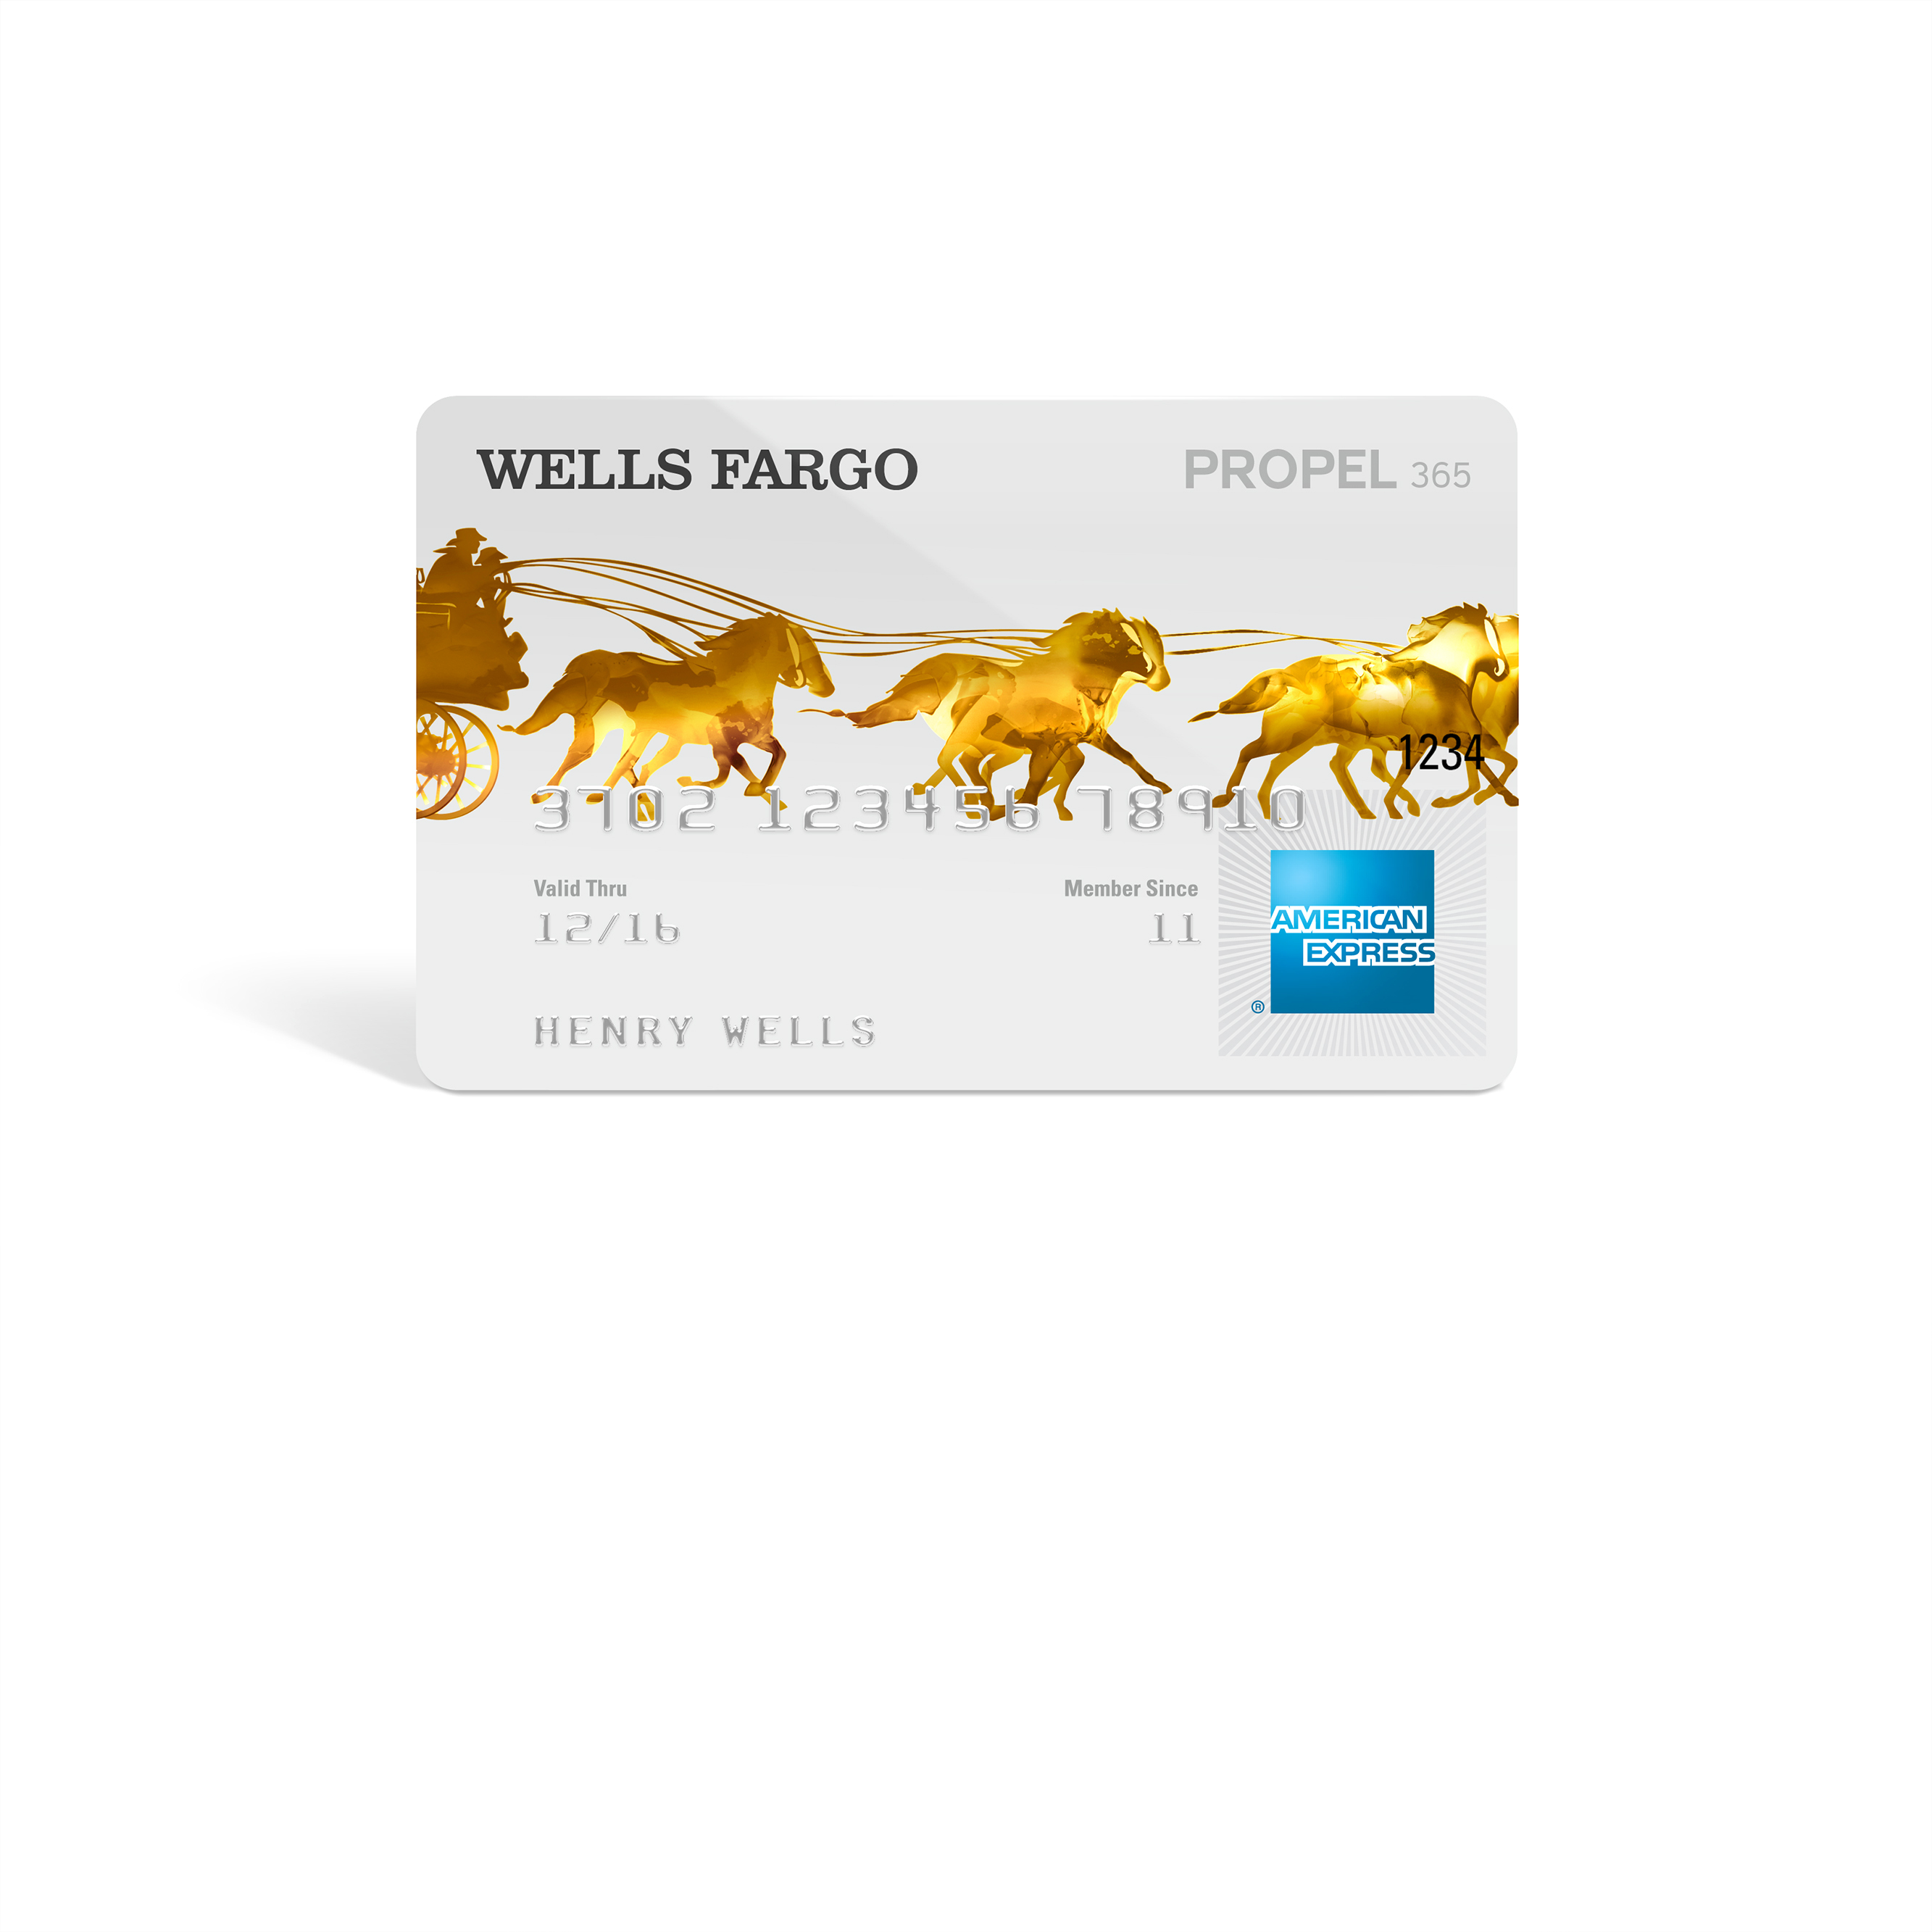 Wells Fargo Propel 365 American Express(R) Card (Photo: Business Wire)